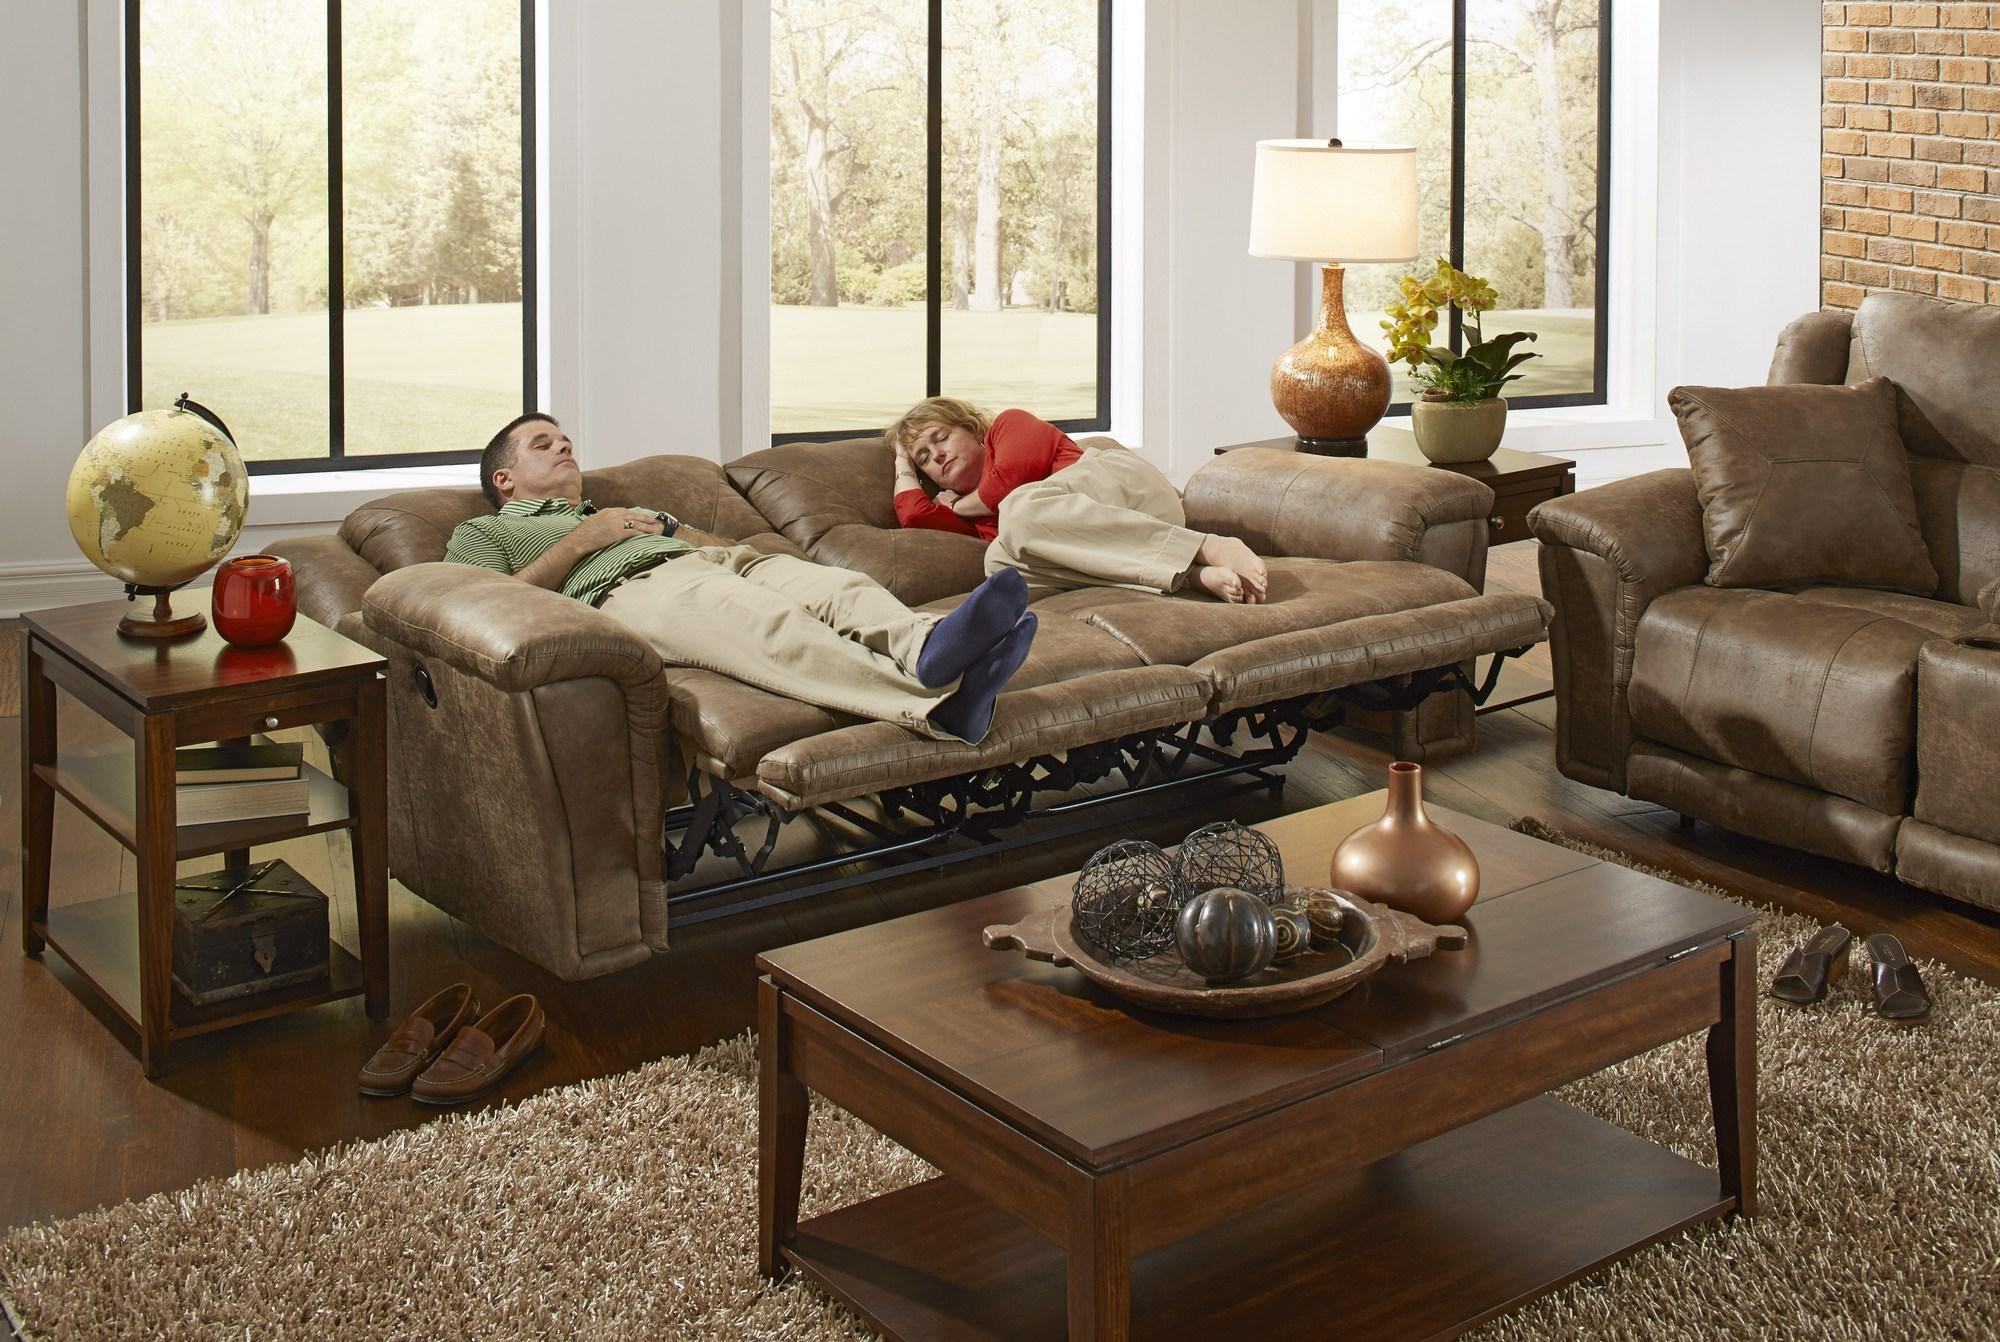 Catnapper Reclining Sofa And Loveseat | Tehranmix Decoration Intended For Catnapper Reclining Sofas (View 18 of 20)